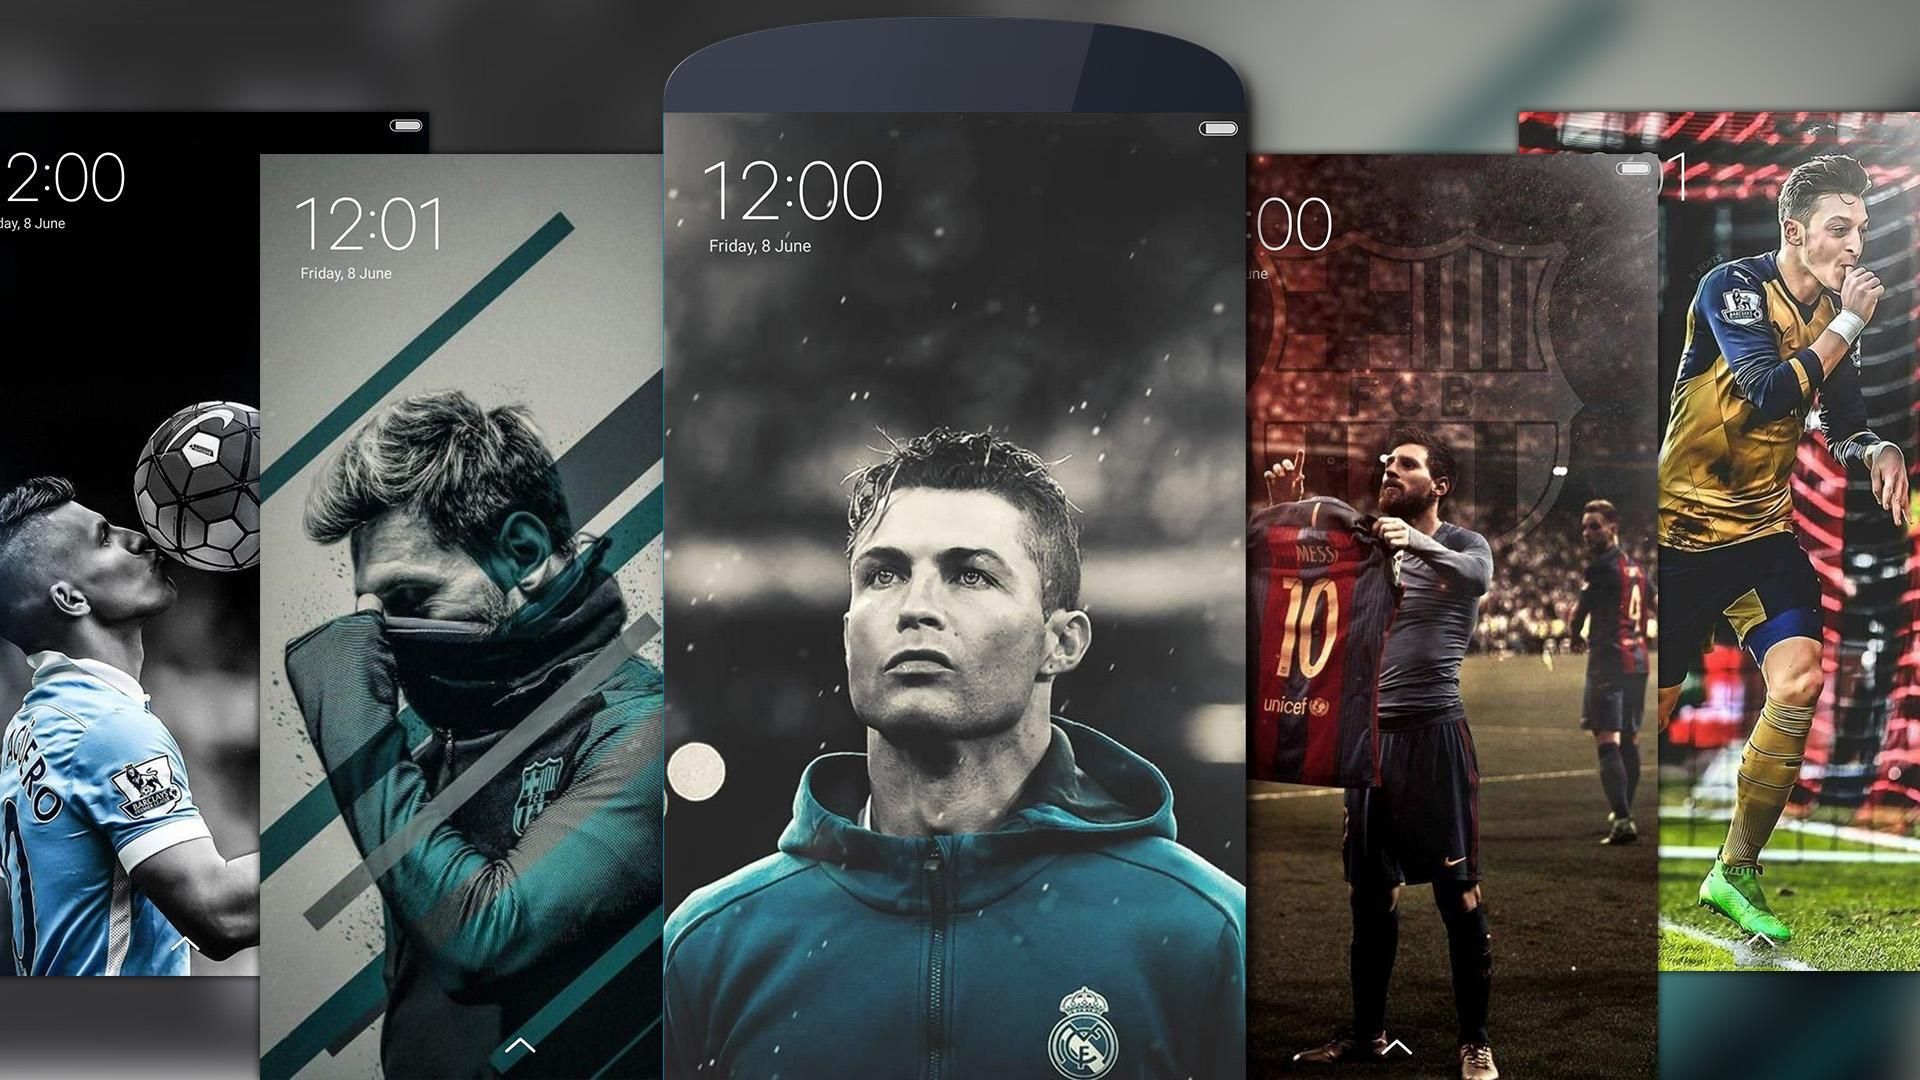 Football Wallpapers 4k Apk Download: HD 🔥 For Android - APK Download